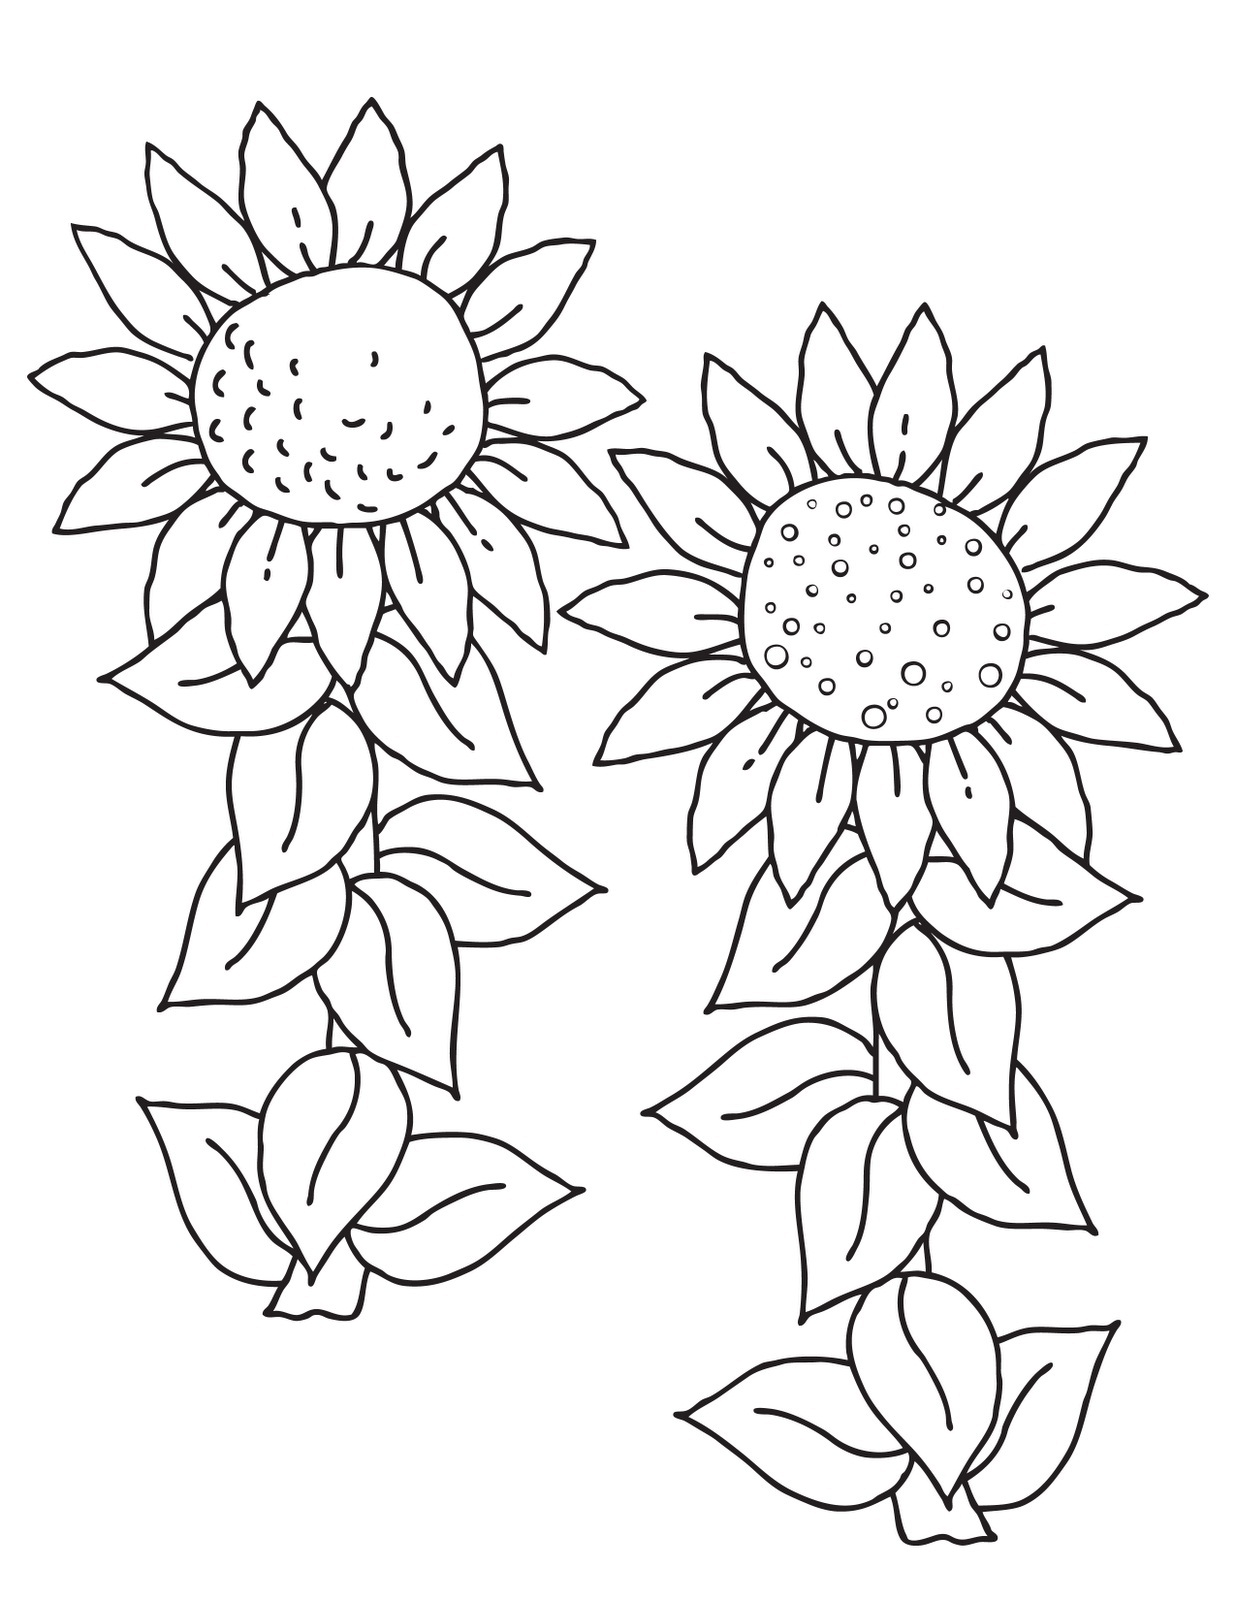 1236x1600 Free Printable Sunflower Coloring Pages For Kids